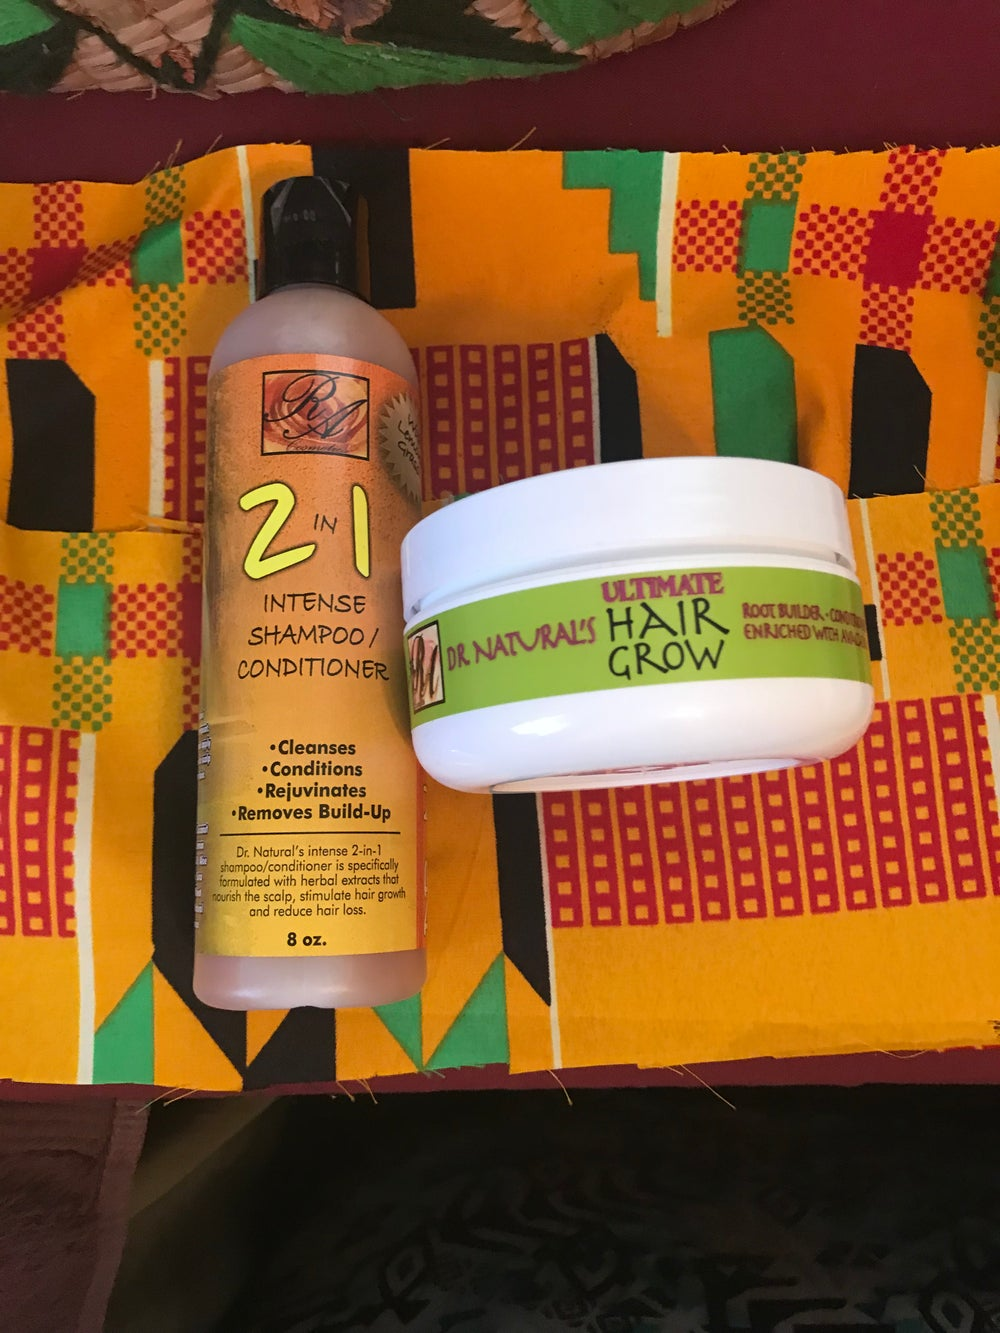 .Naturals Hair Grow & Root Build Conditioner